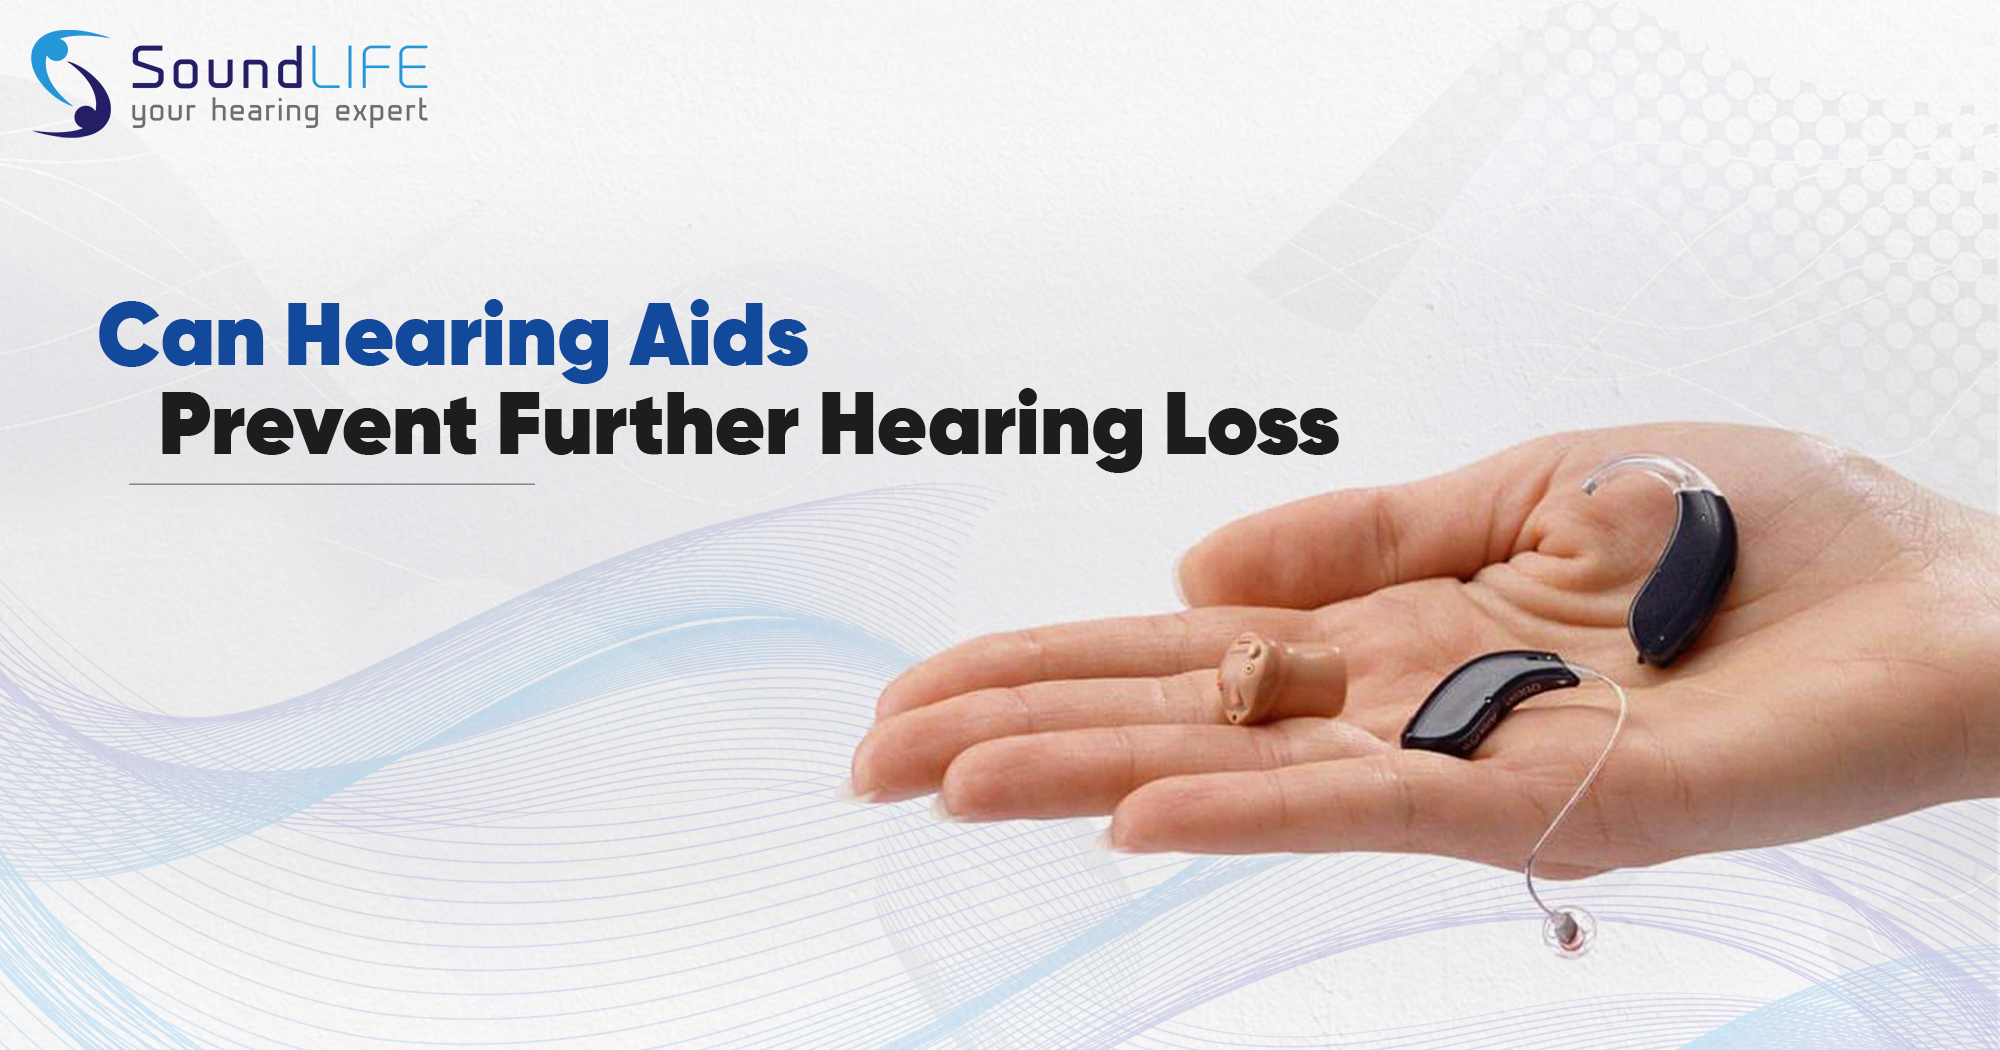 can hearing aids prevent further hearing loss (sub point how often do you wear your hearing aids